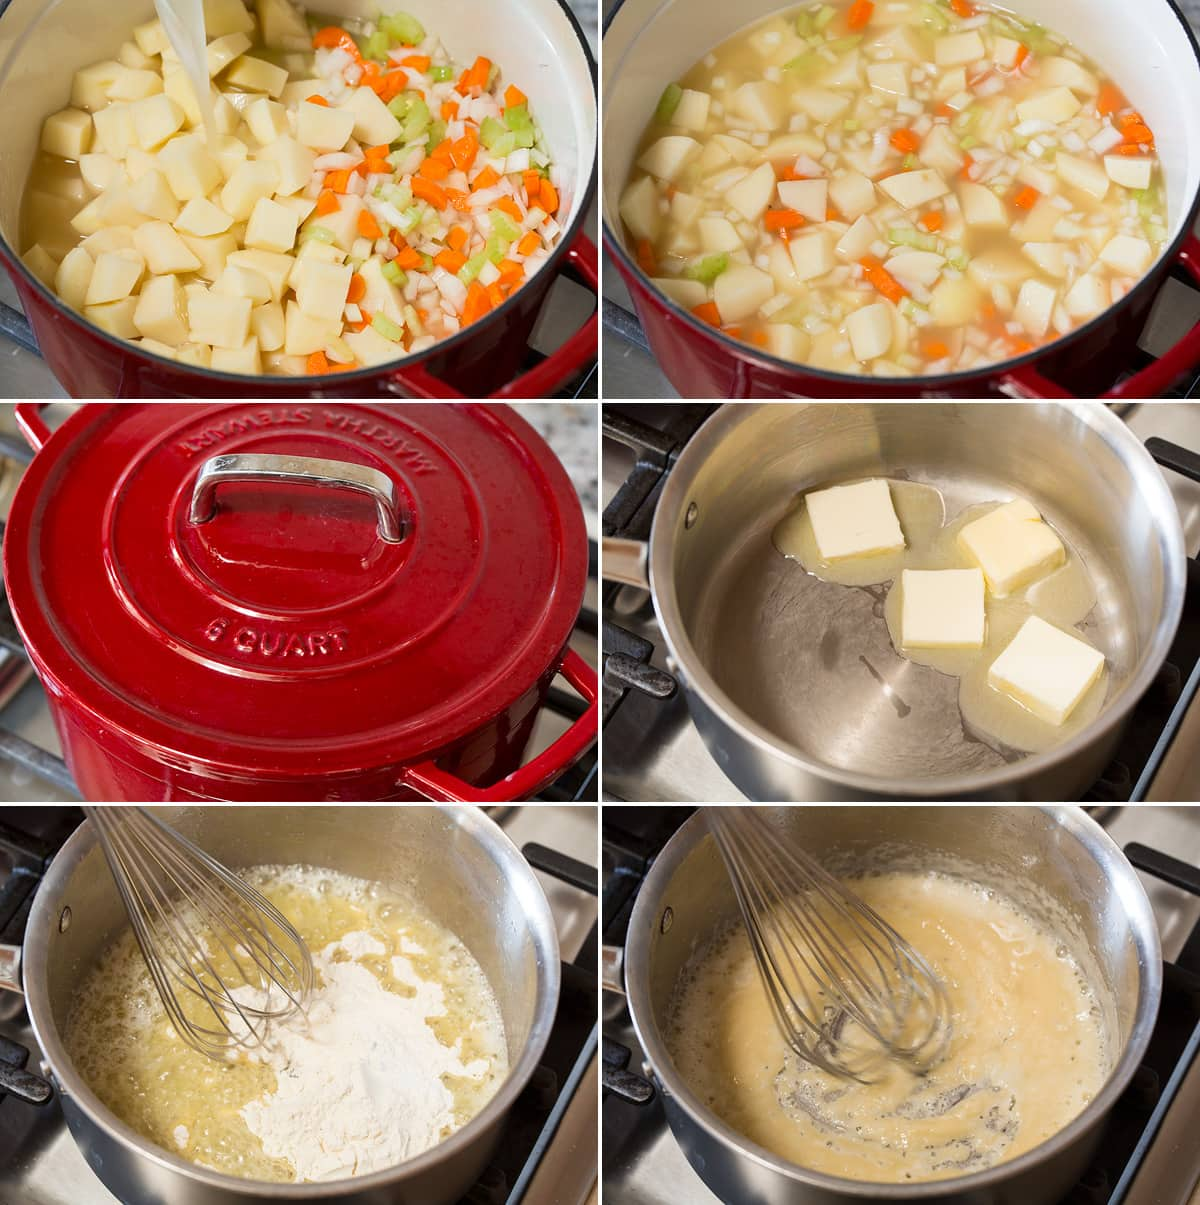 Collage of six photos showing steps to making potato soup. Shows simmering potatoes, carrots, celery and onion in chicken broth. Then includes first steps of making roux by melting butter and mixing with flour.